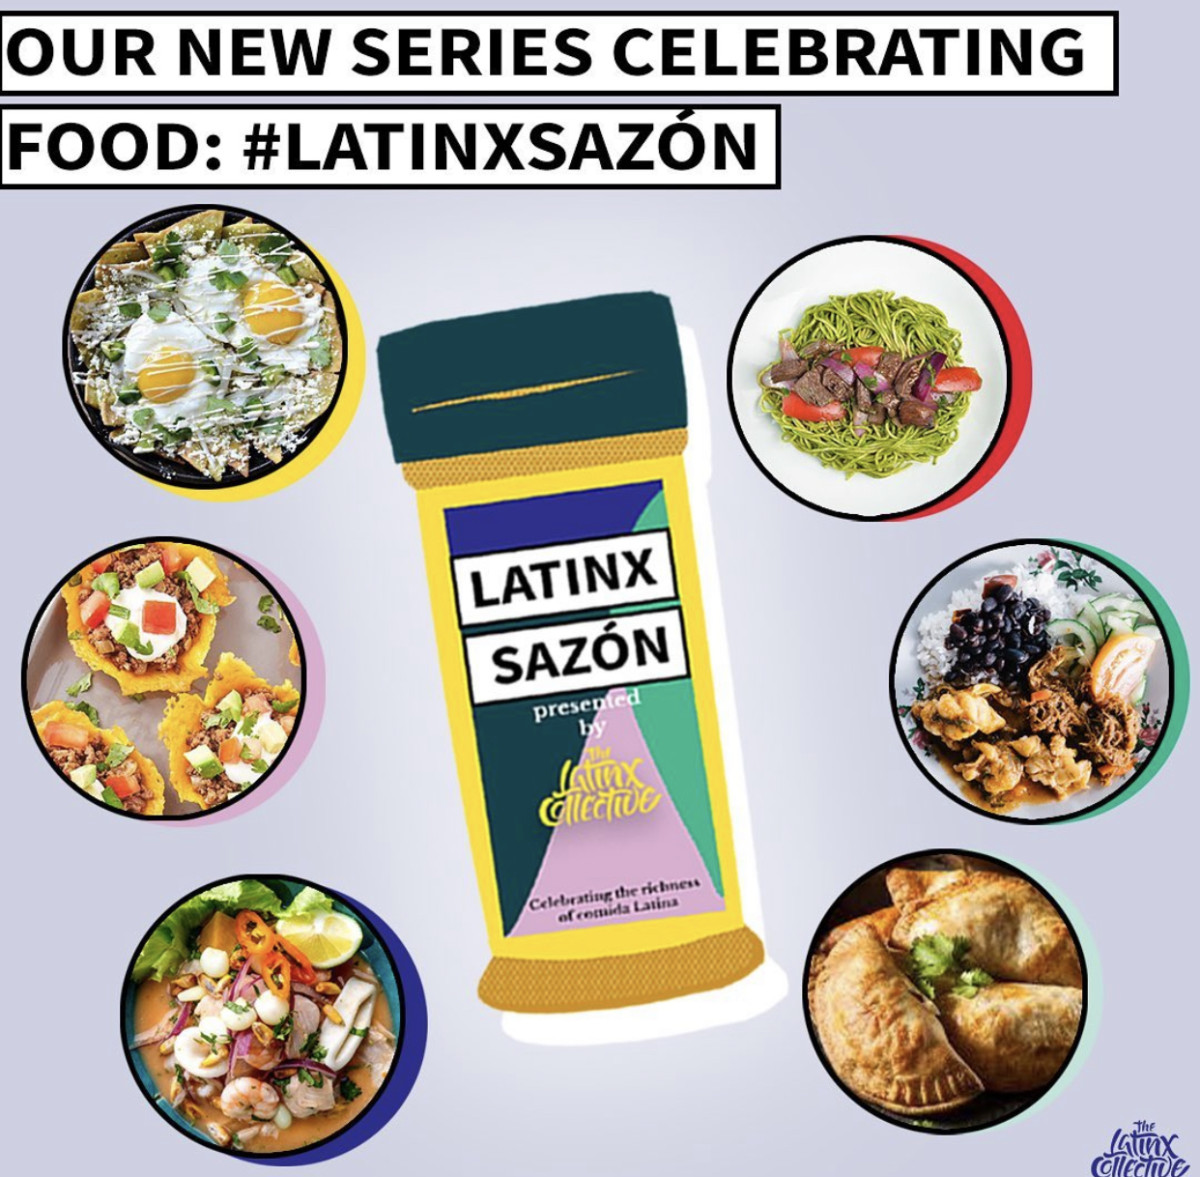 : Celebrating our contributions, culture, and access.Image credit: The Latinx Collective